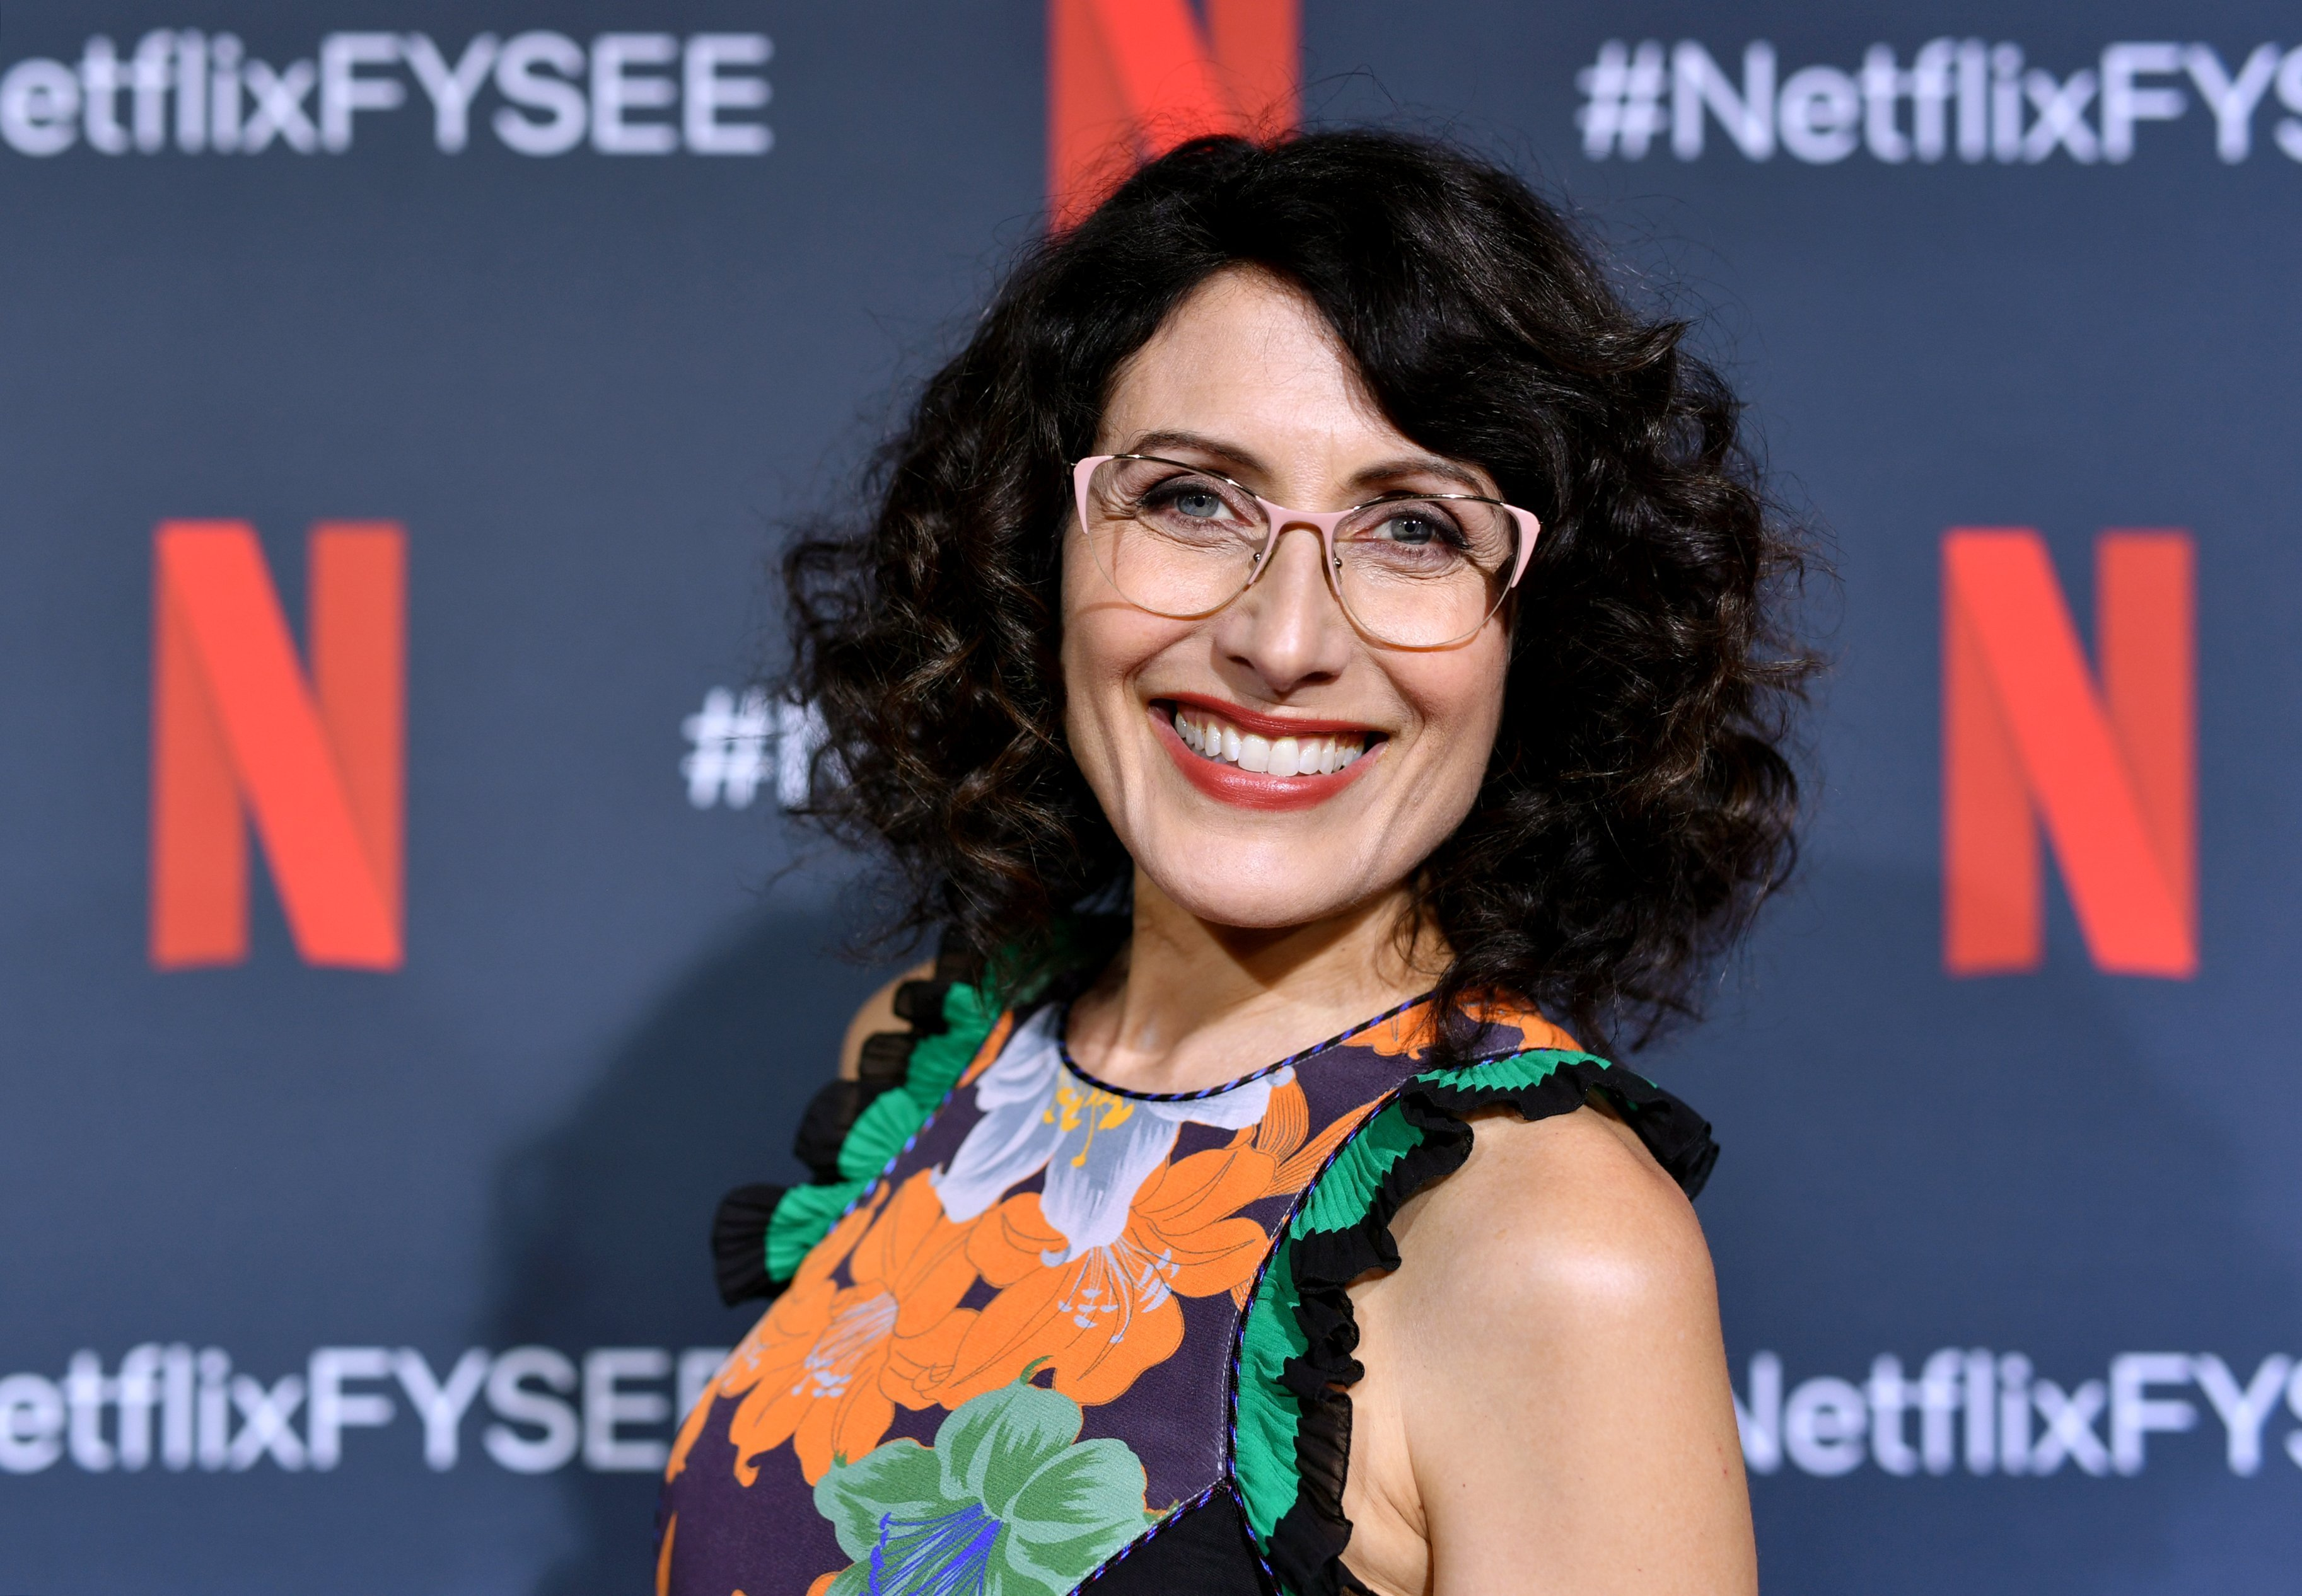 Lisa Edelstein attends the Netflix FYSEE Scene Stealer Panel at Raleigh Studios on May 30, 2019 | Source: Getty Images